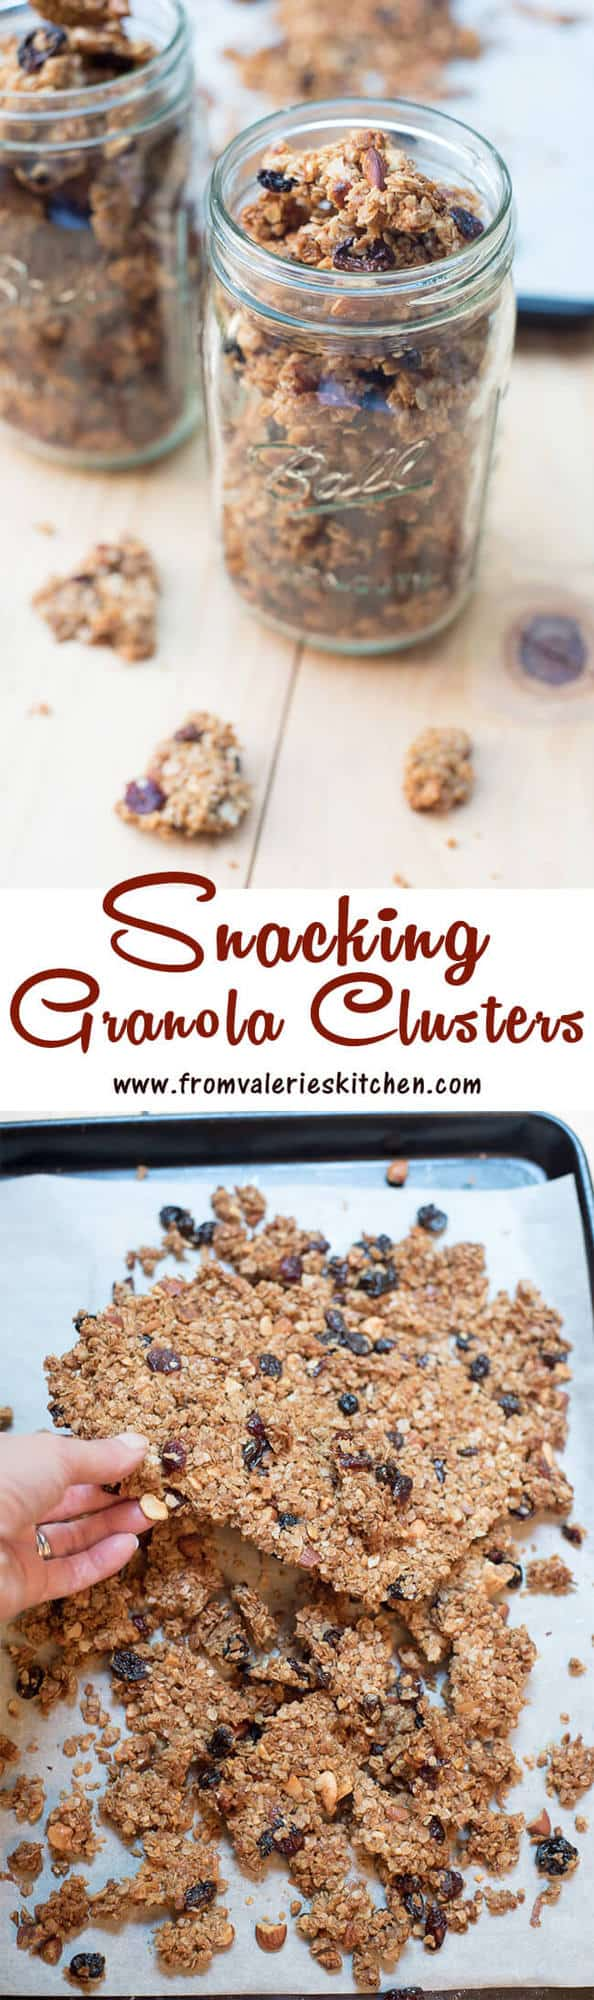 With a special baking method and some helpful tips you can make your own Snacking Granola Clusters at home! Wonderful alone or served with fruit and yogurt.